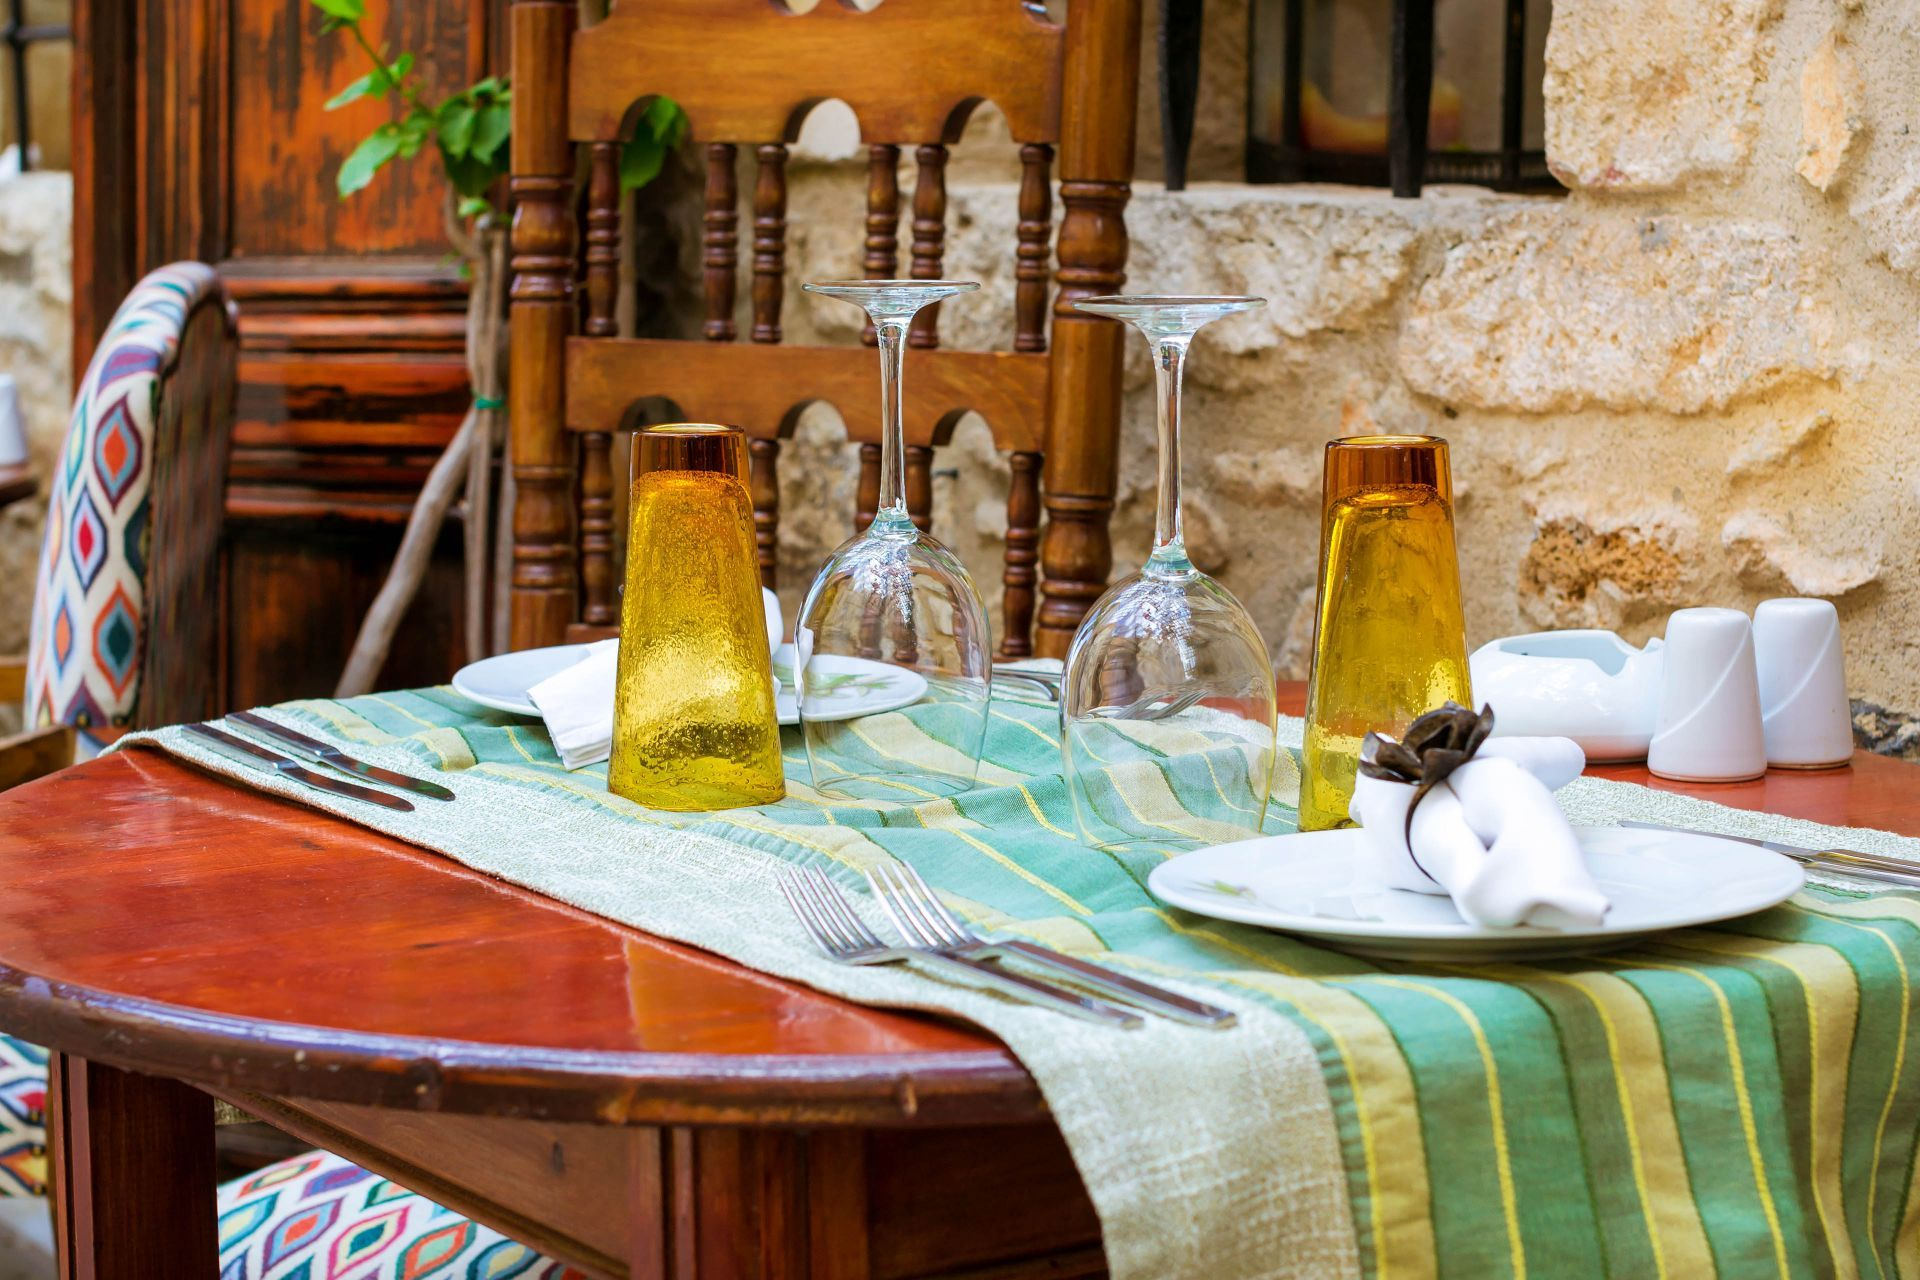 Places to eat and drink in Rethymno